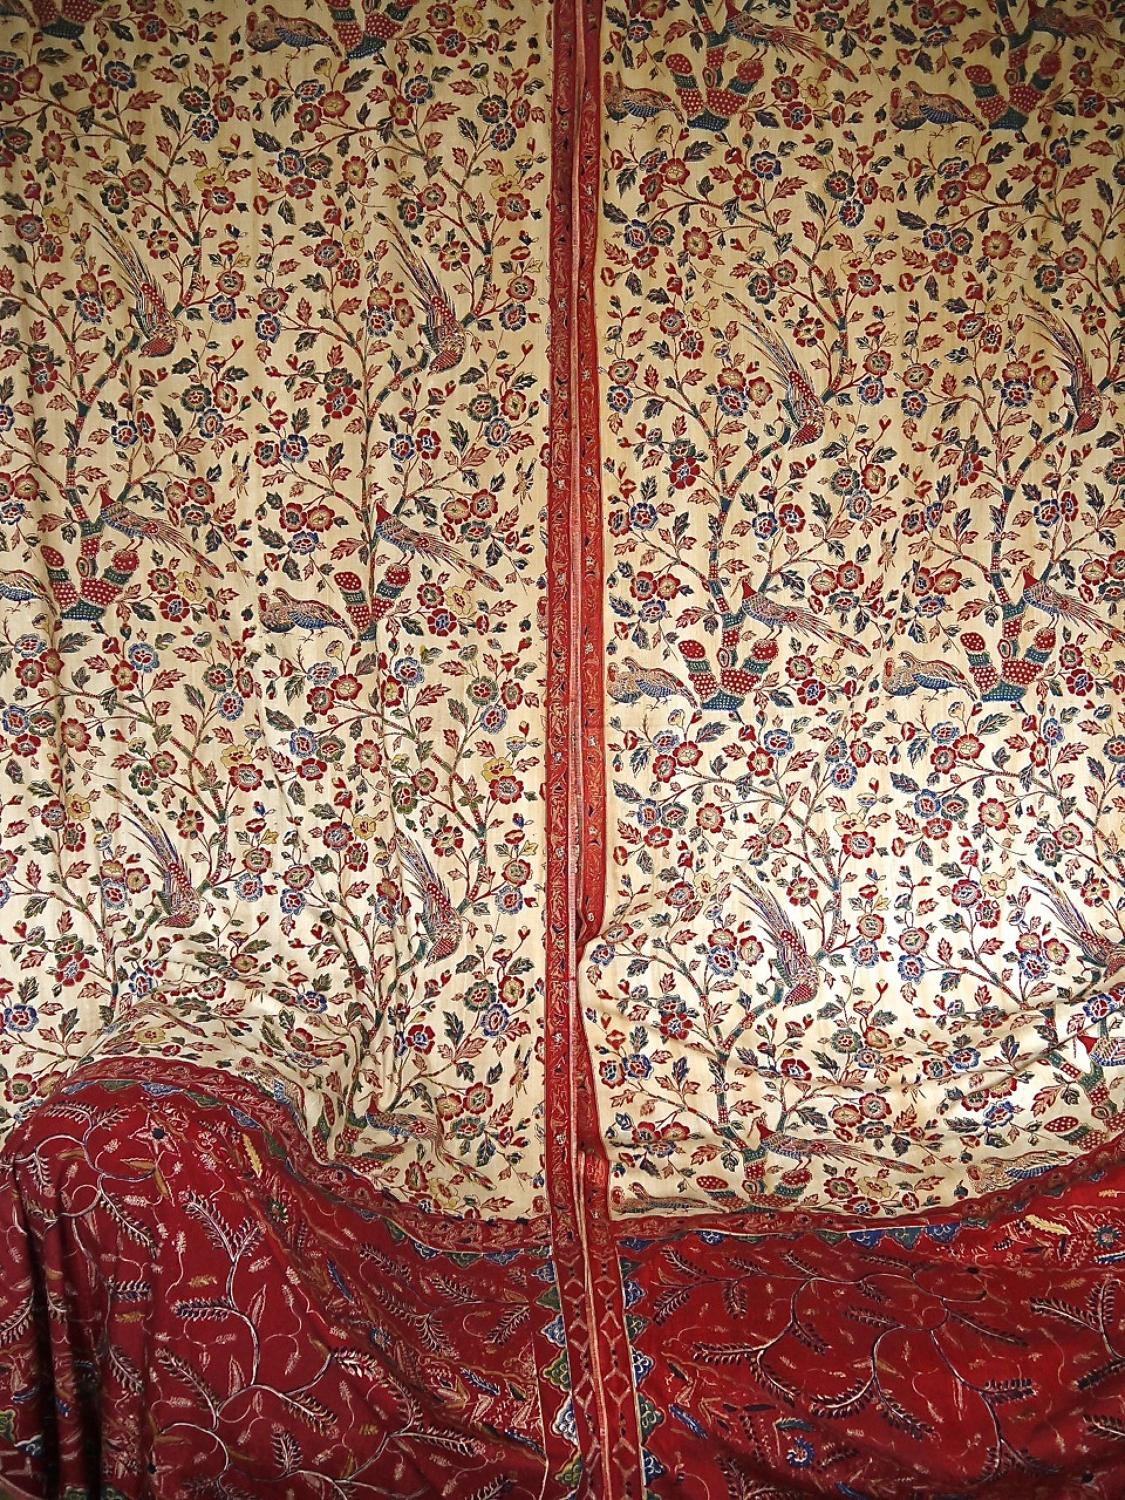 Pair of 19th century Blockprinted Panels